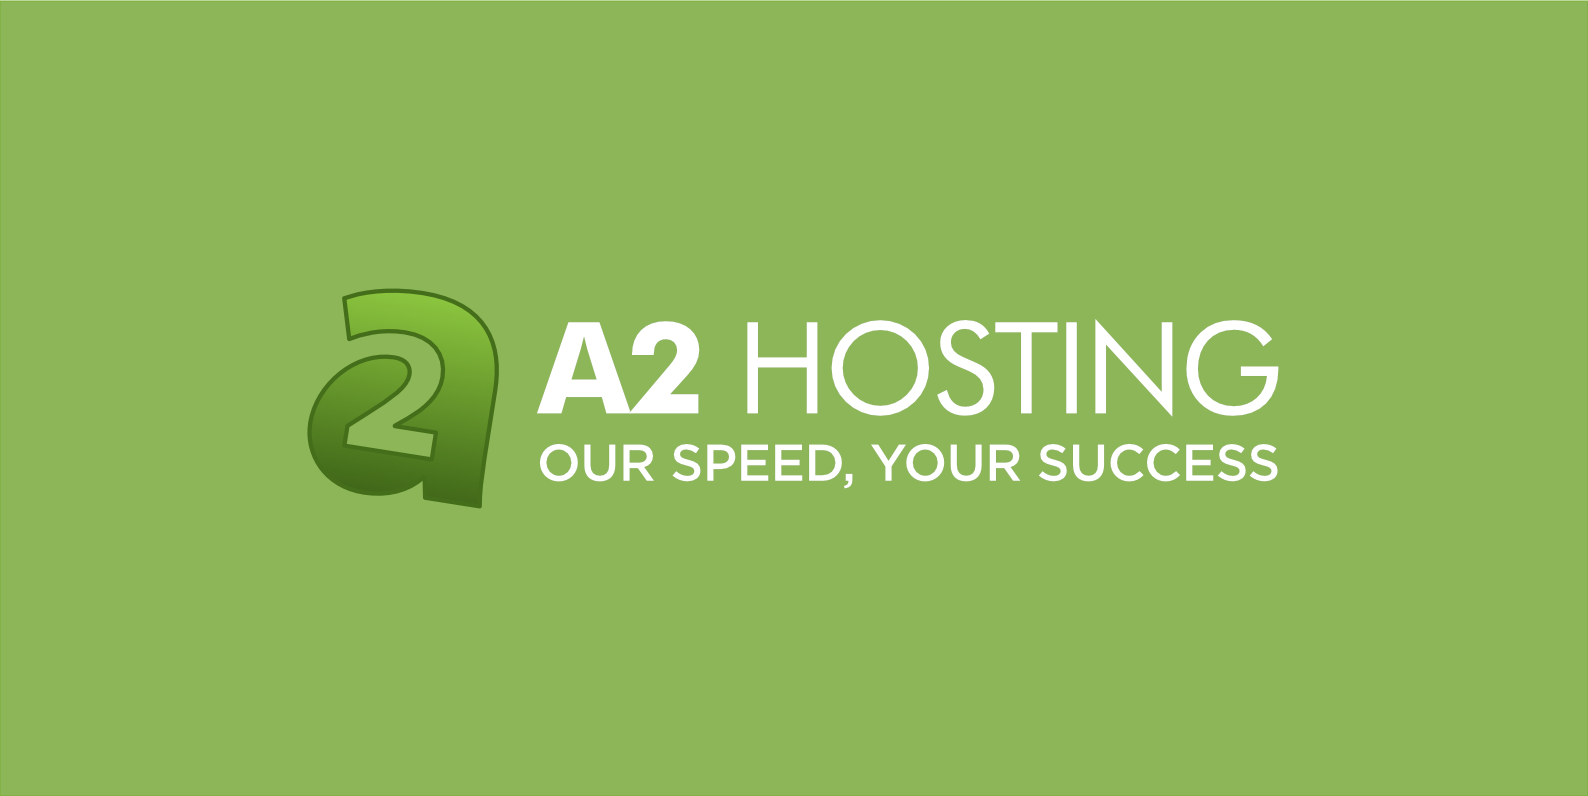 A2 HOSTING REVIEW & COUPONS 2019